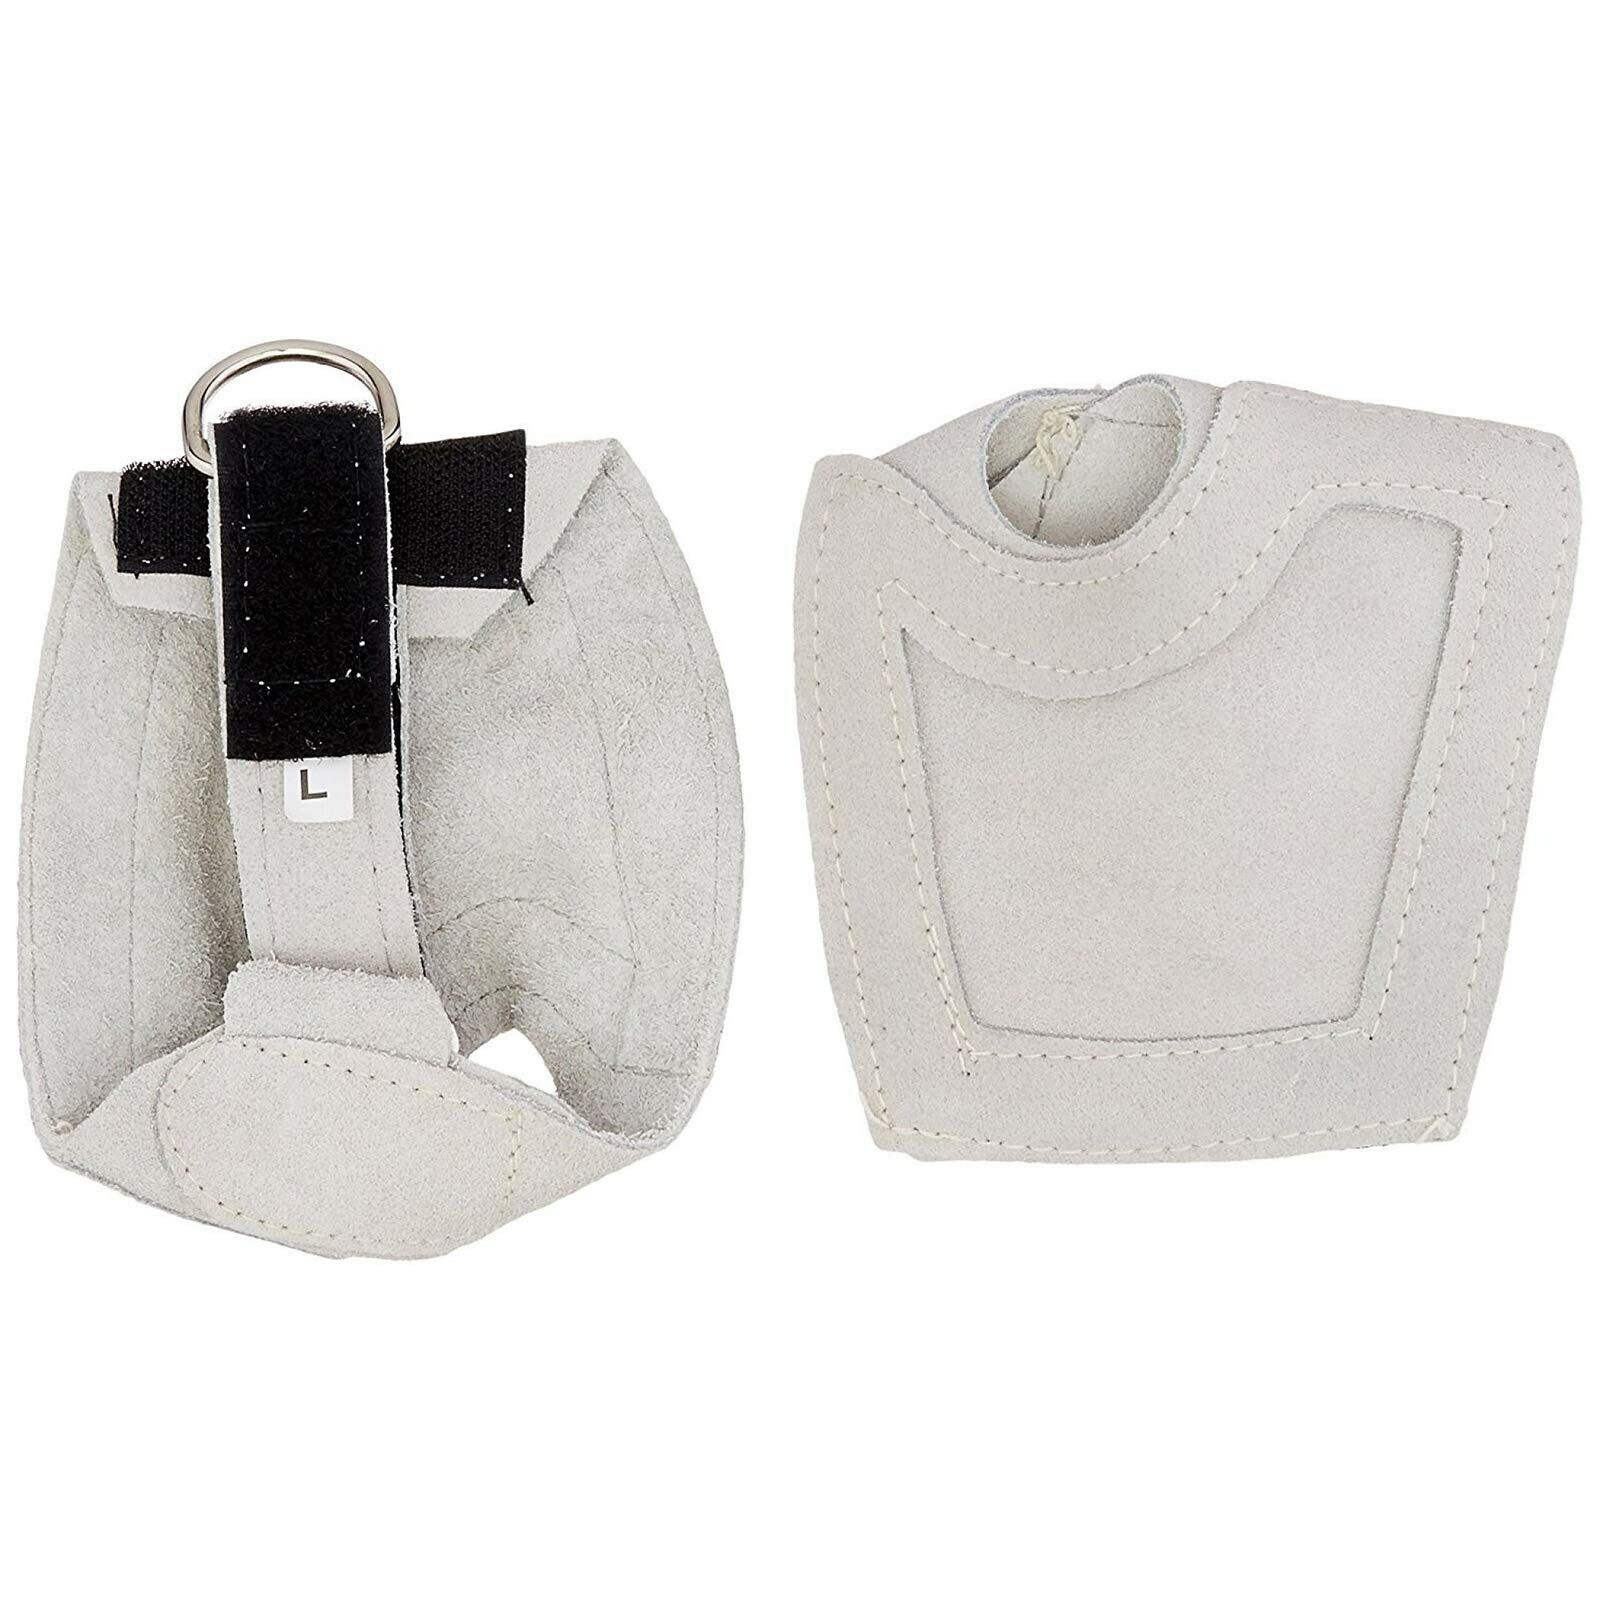 Sammons Preston Wheelchair Pushing Cuffs, Pair Of Fingerless Suede Gloves